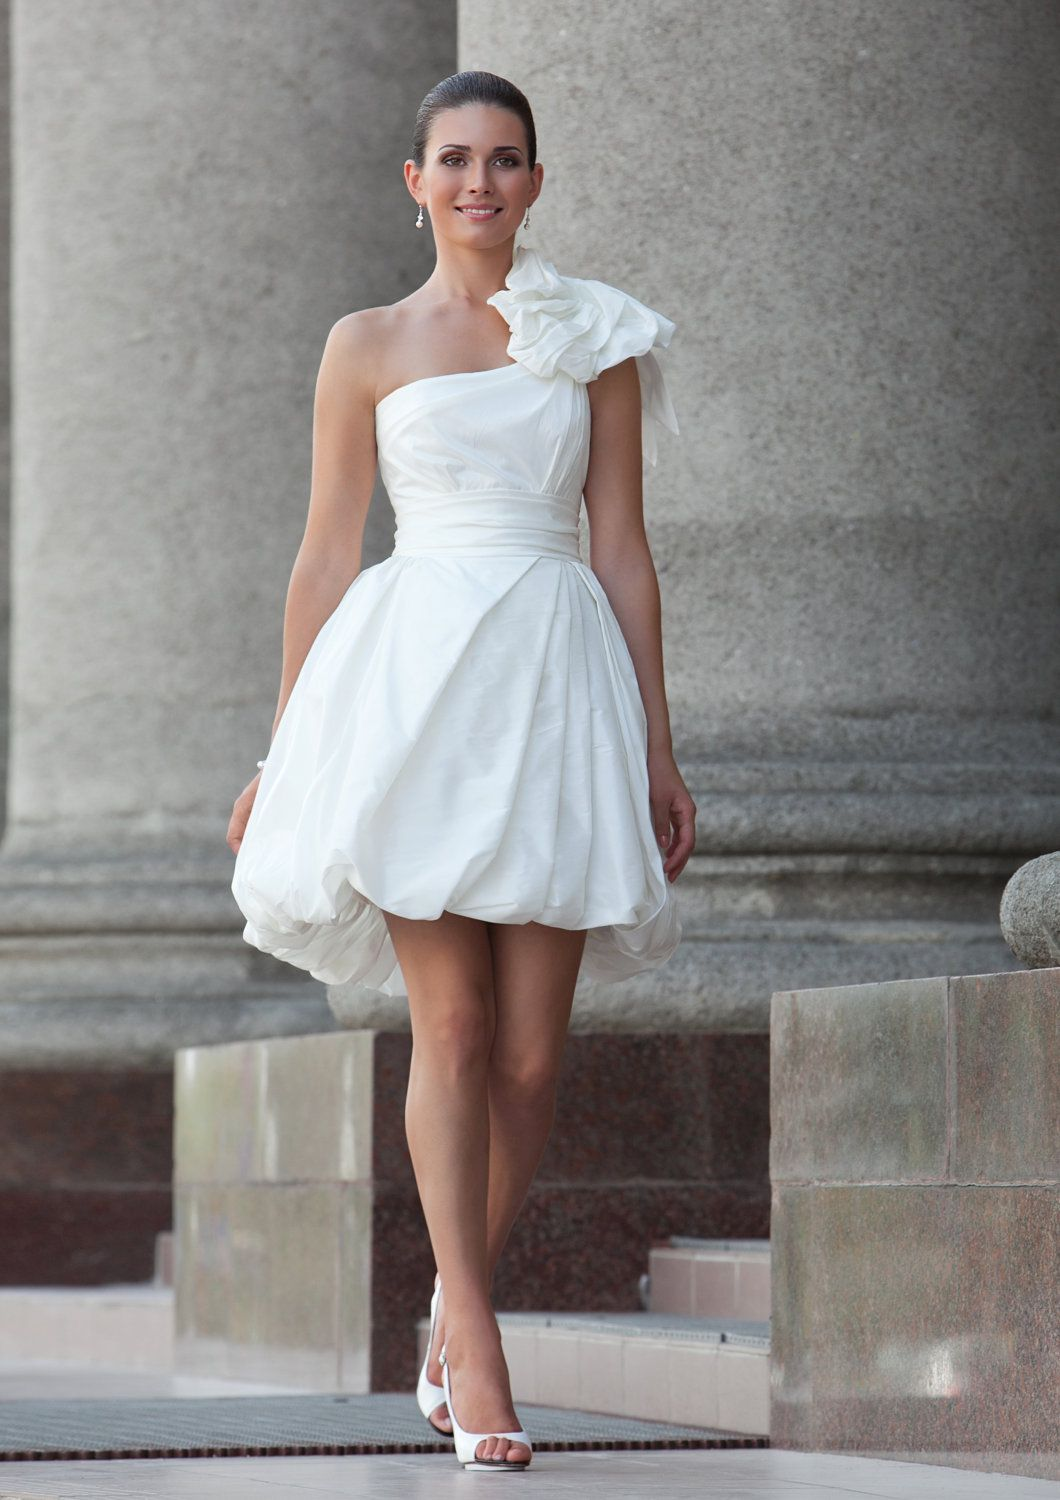 Dresses for guests at a beach wedding  White short dress for rehearsal dinner or beach wedding